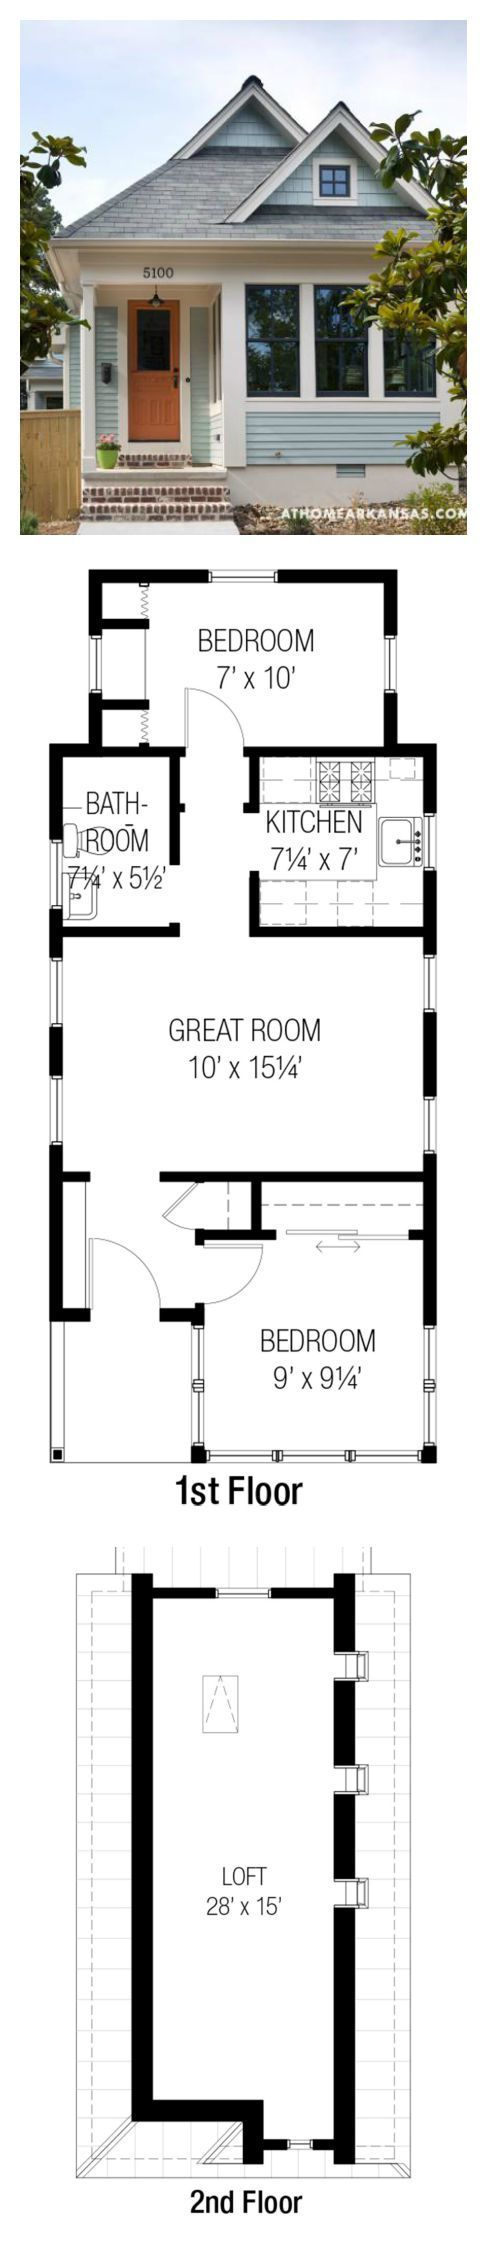 Details of r awesome small house floor plans 2 bedrooms tiny house - Plan 915 16 Whidbey From Tumbleweed Tiny House Co 557 Sf